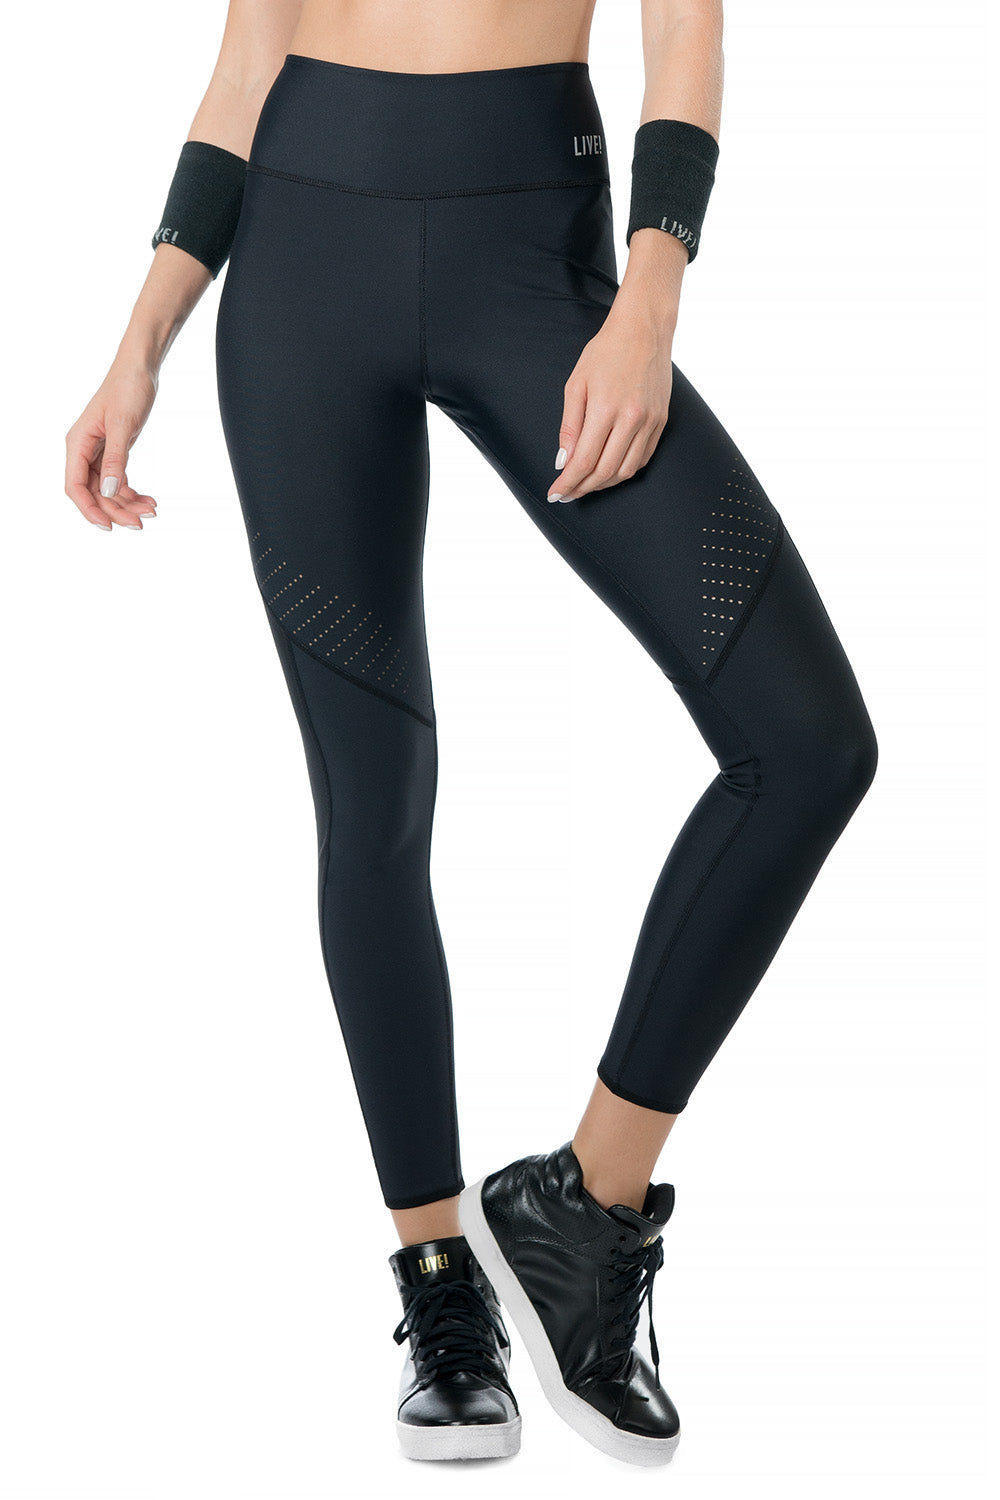 Reversible Power Force Glow Tight